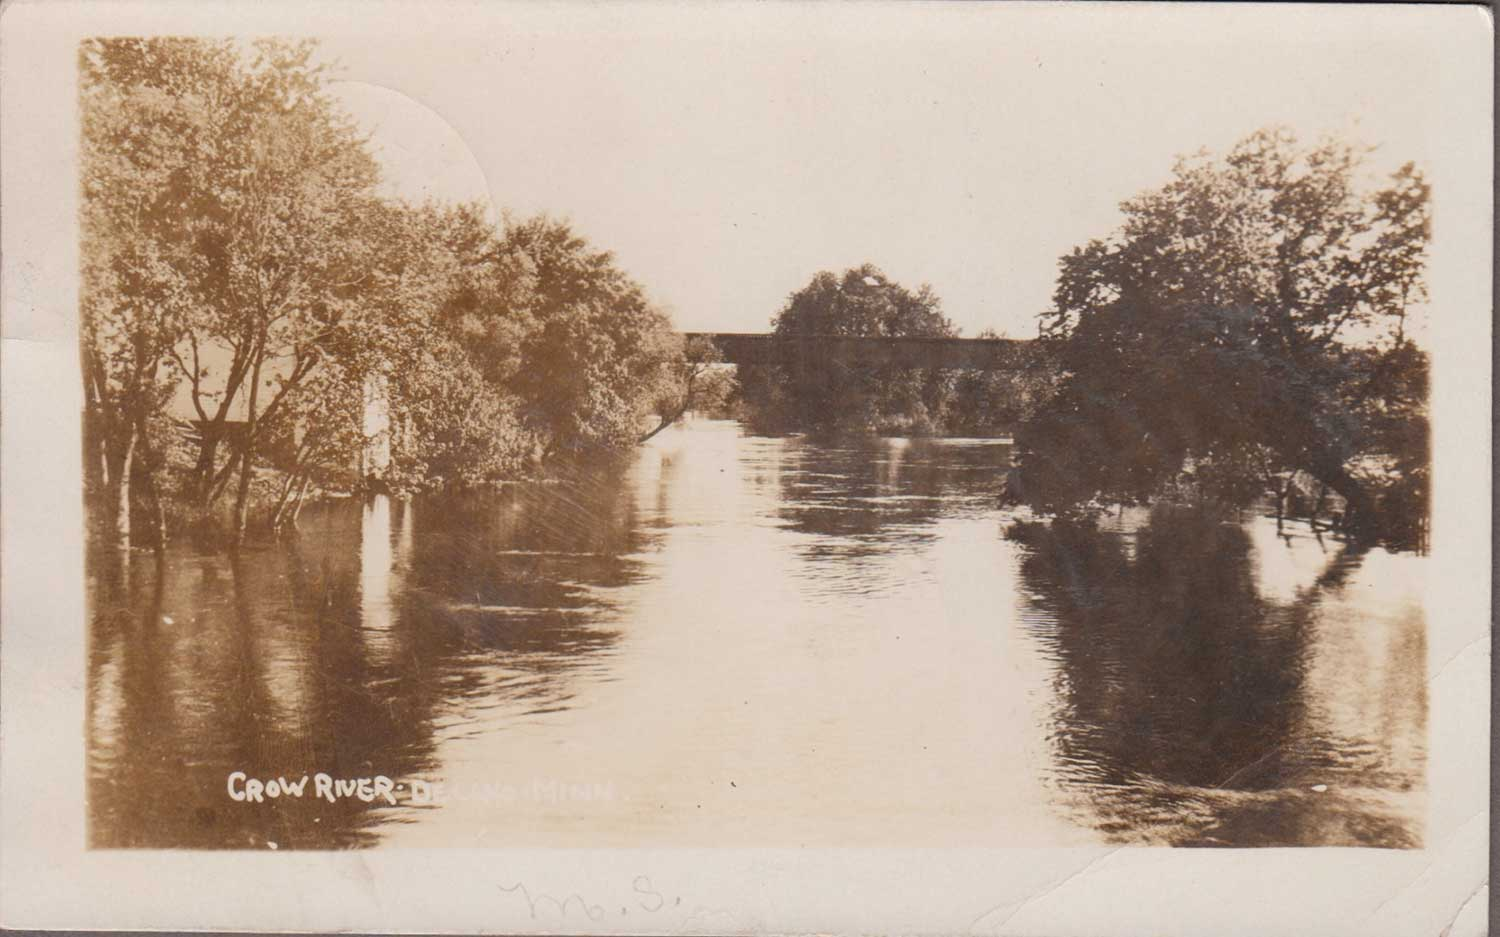 7. Crow River Sepia Toned Postcard